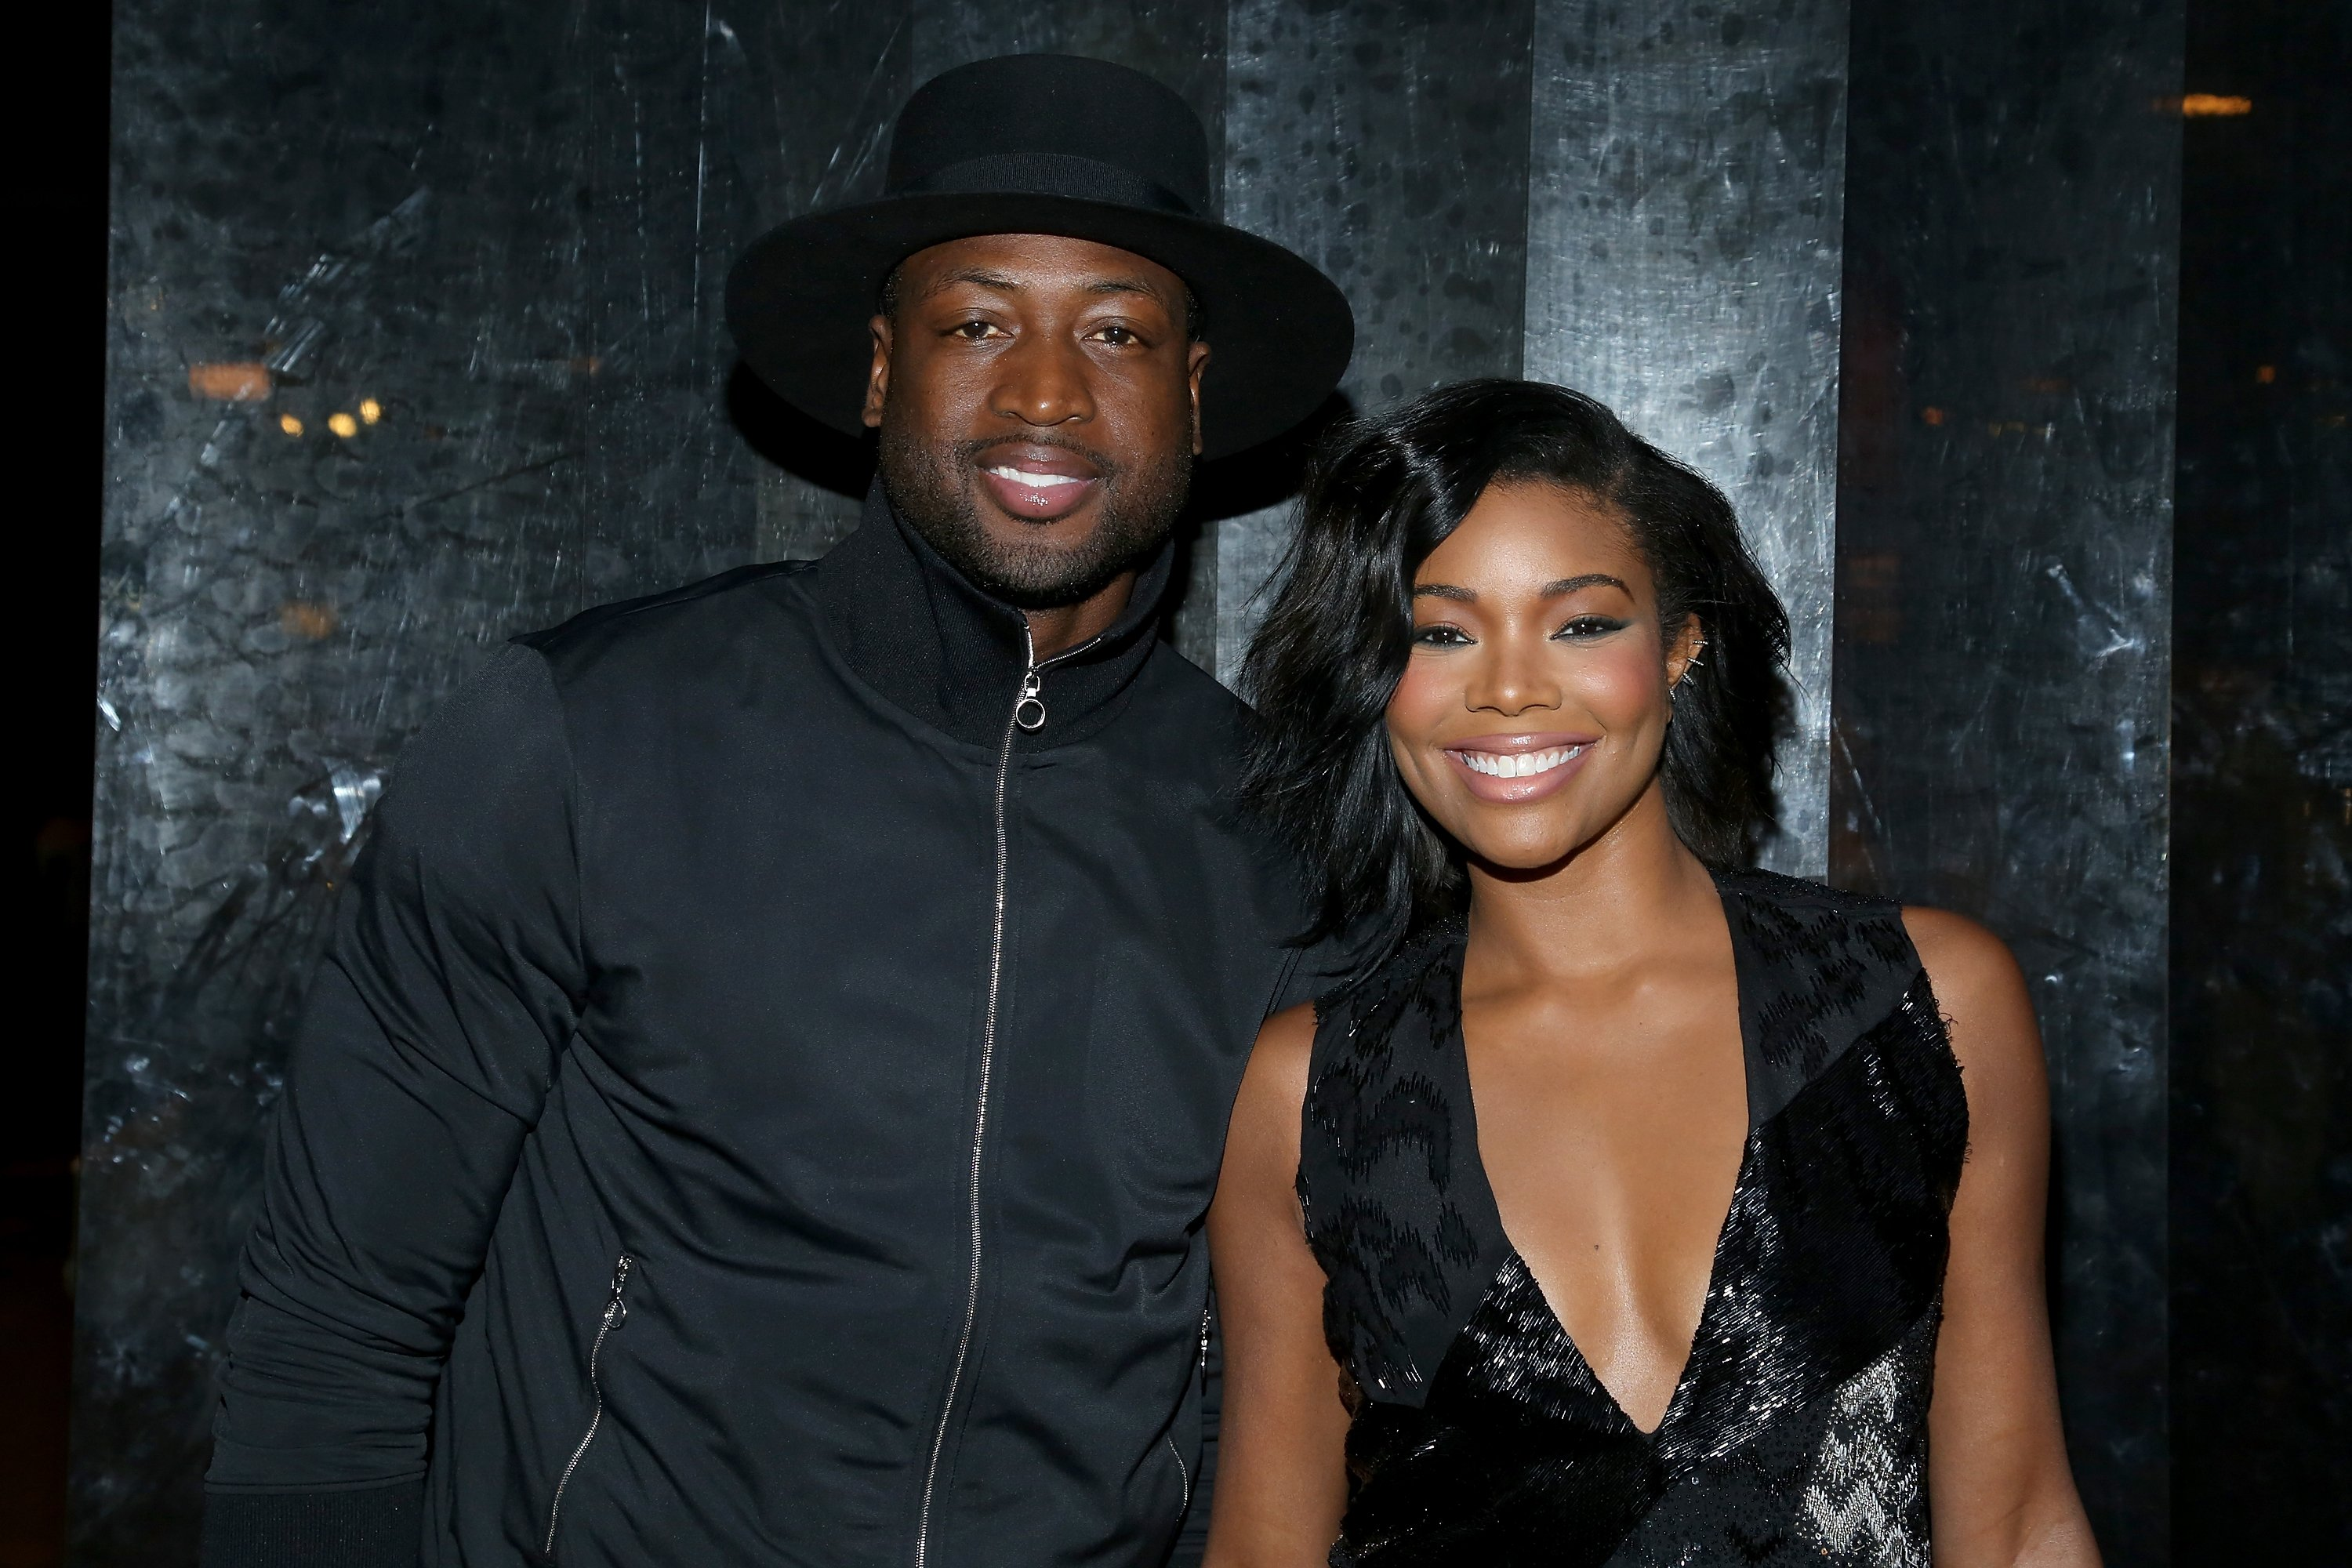 Gabrielle Union & Dwyane Wade während der New Yorker Modewoche am 13. September 2015 . | Quelle: Getty Images